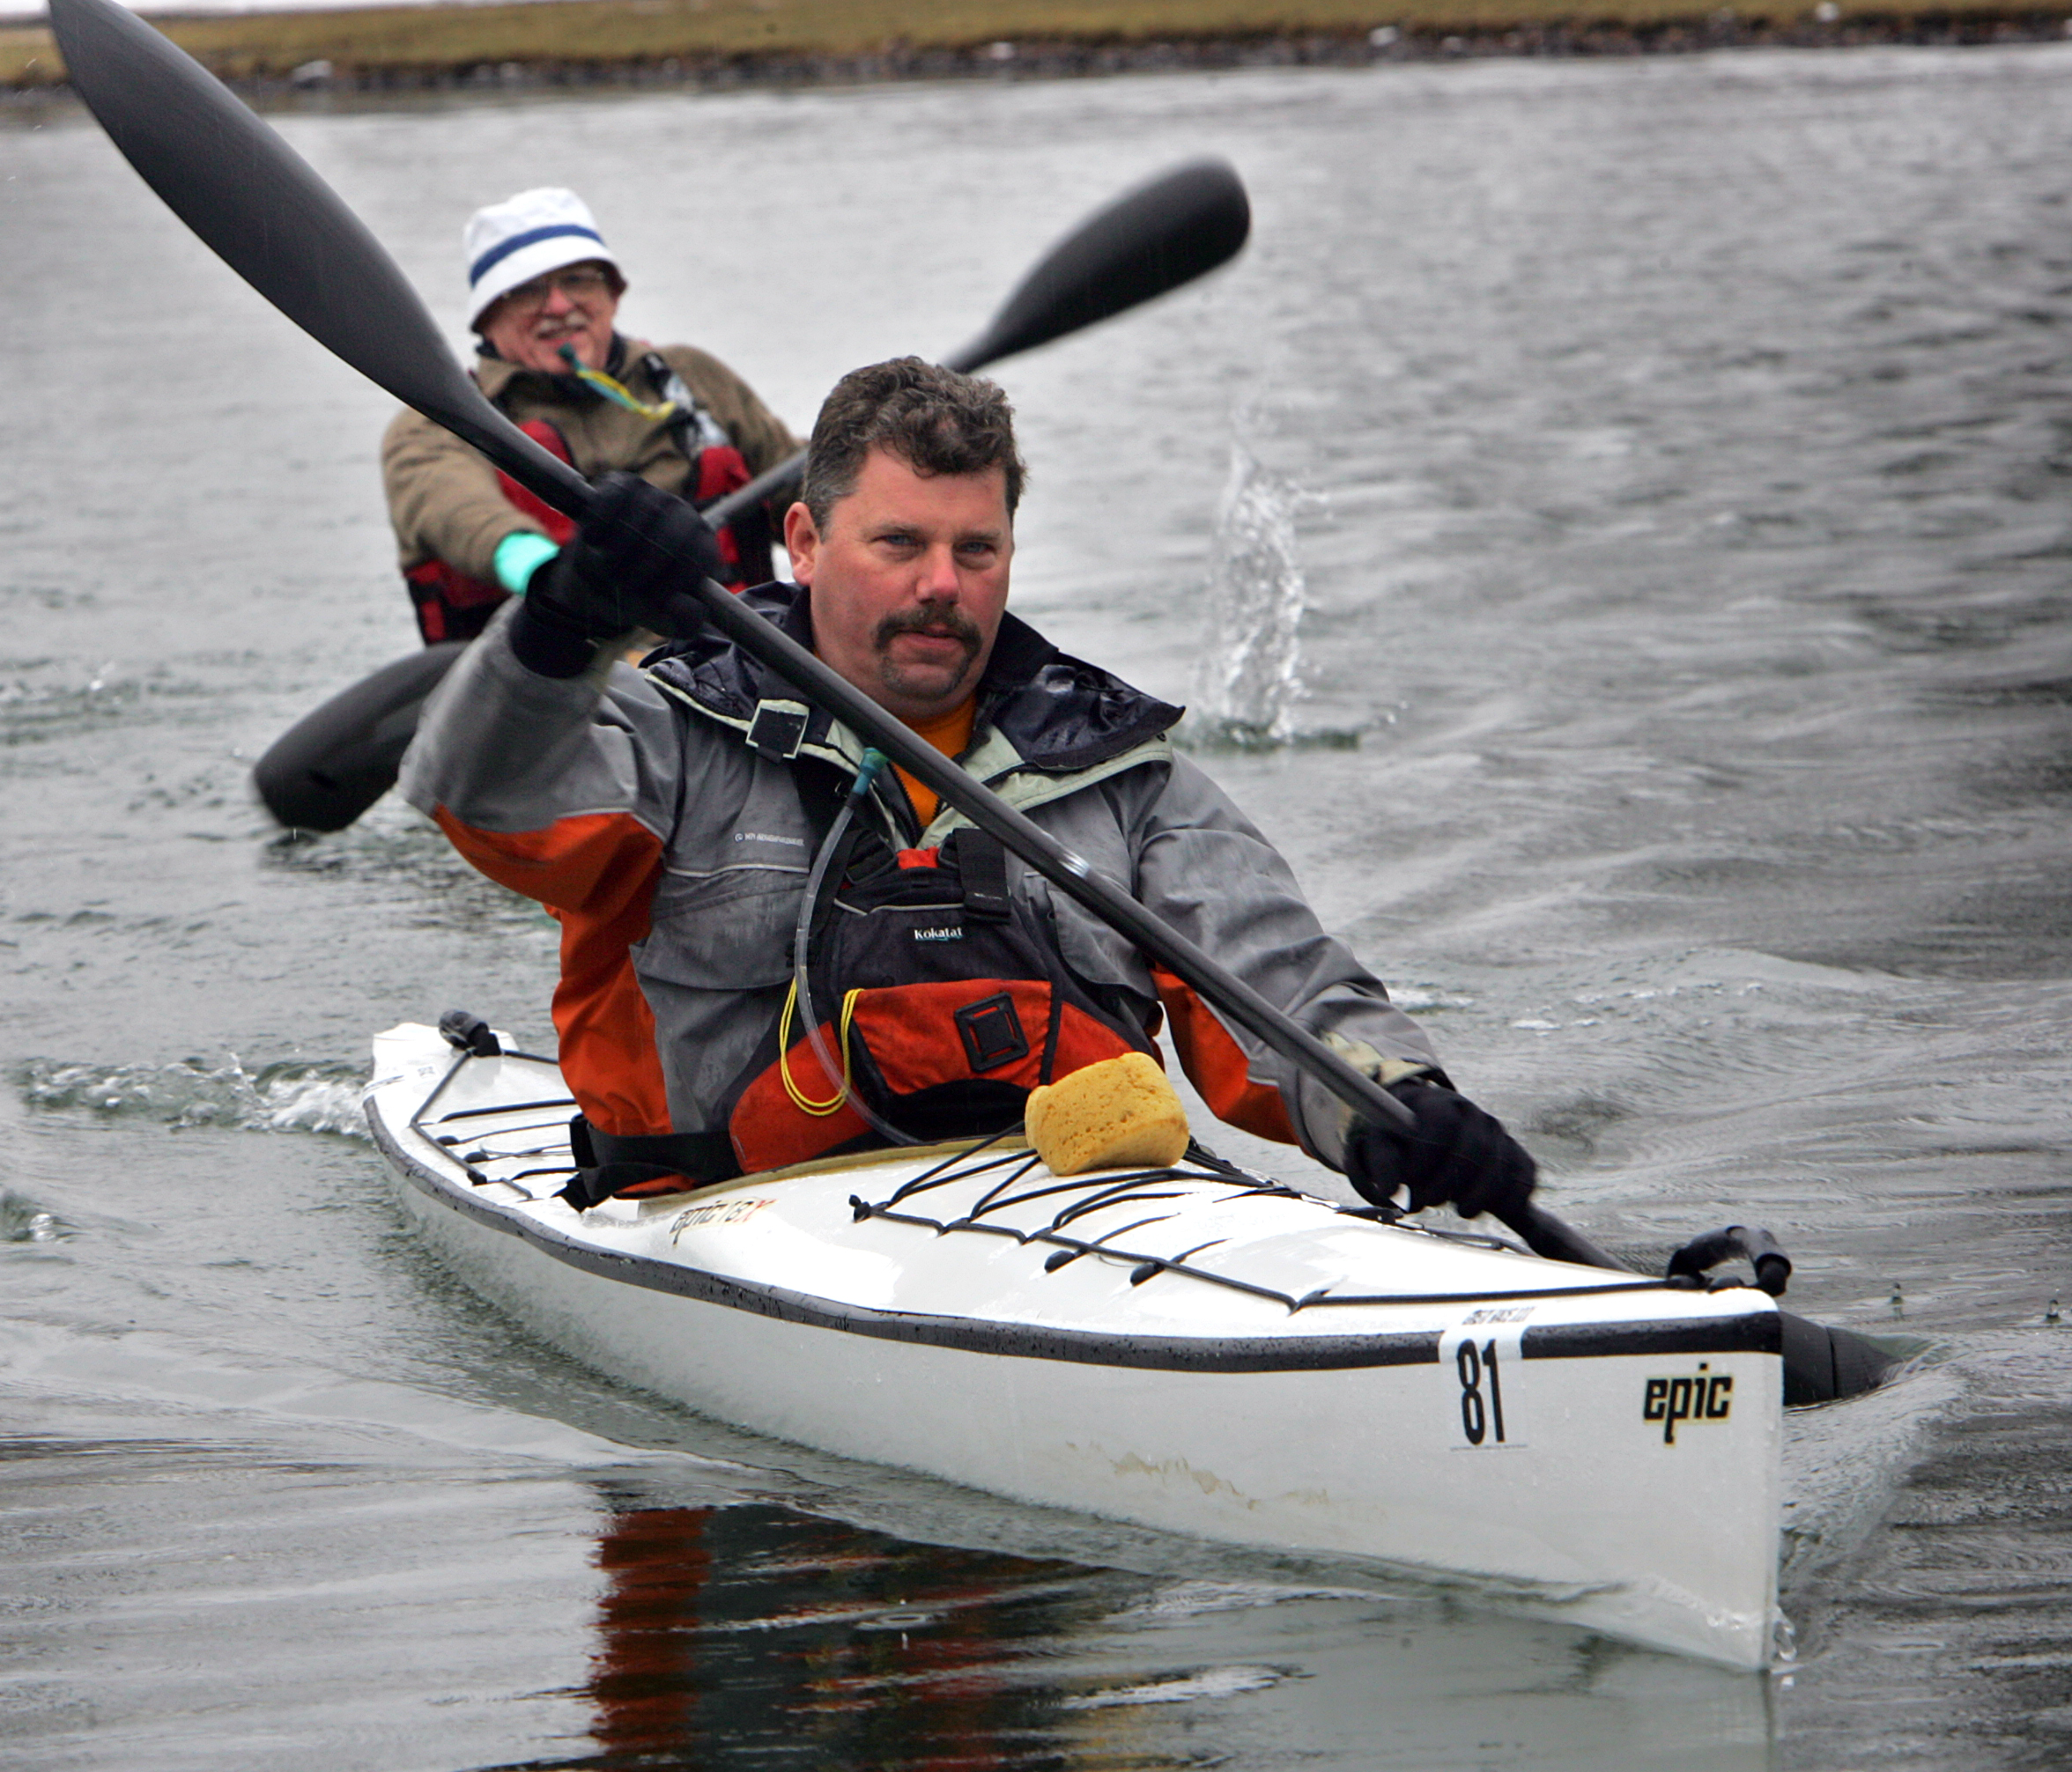 Kayak - 08 photo